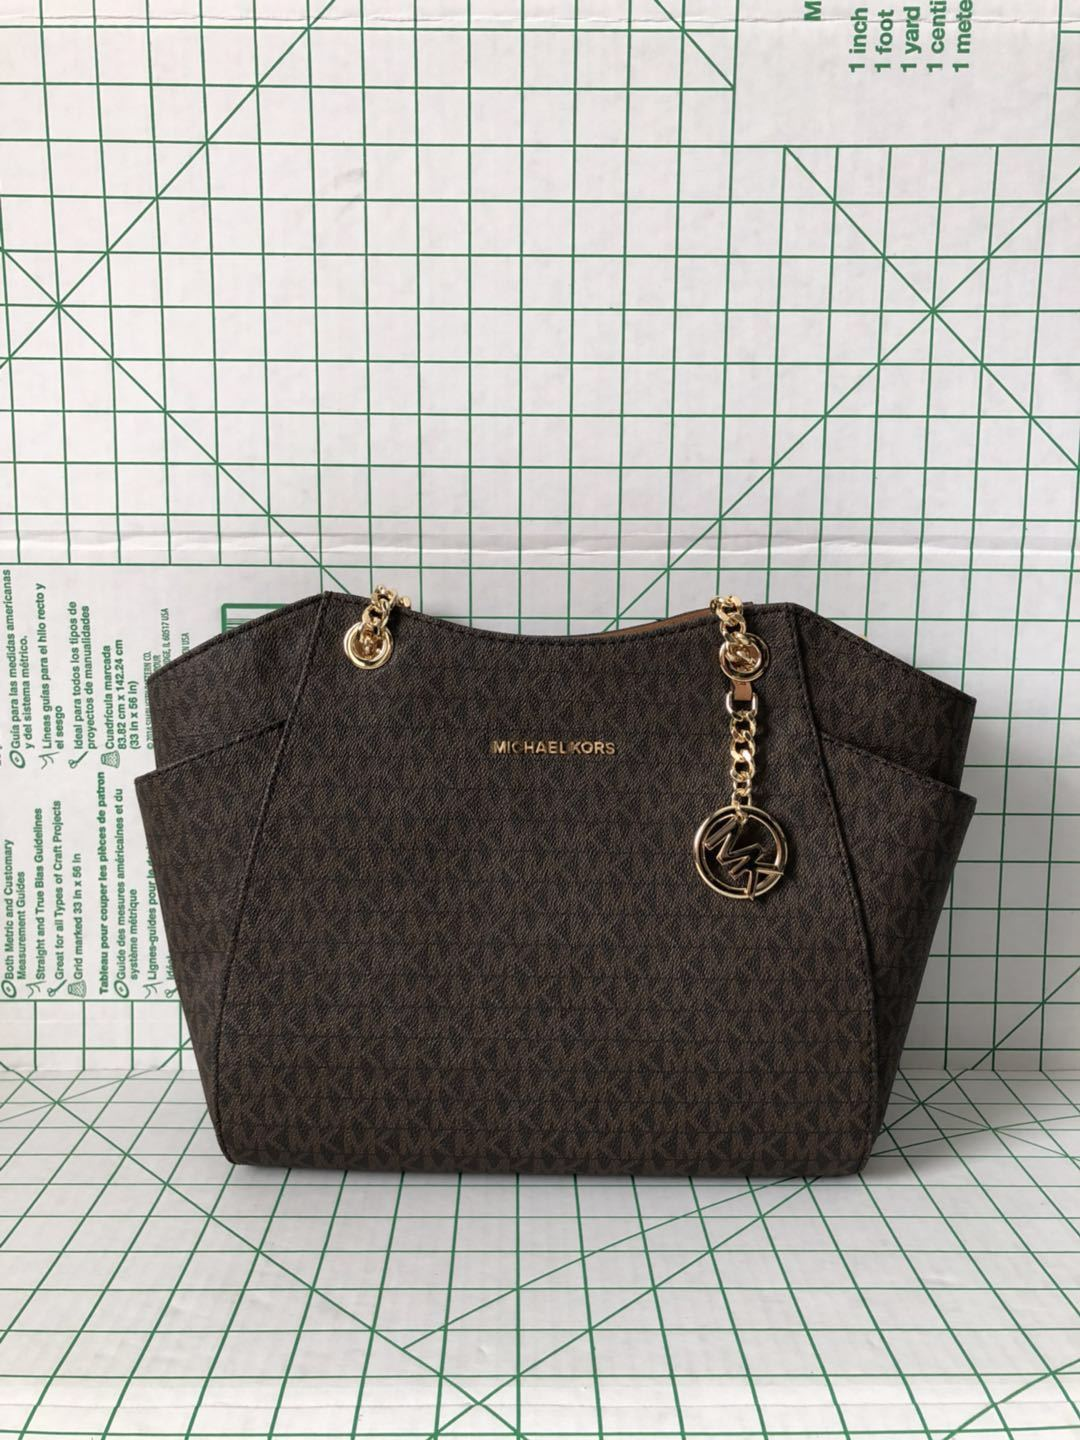 9eb378a6ffd7 57. 57. Previous. Michael Kors Jet Set Travel Large Signature Shoulder Bag  Brown PVC Chain Tote